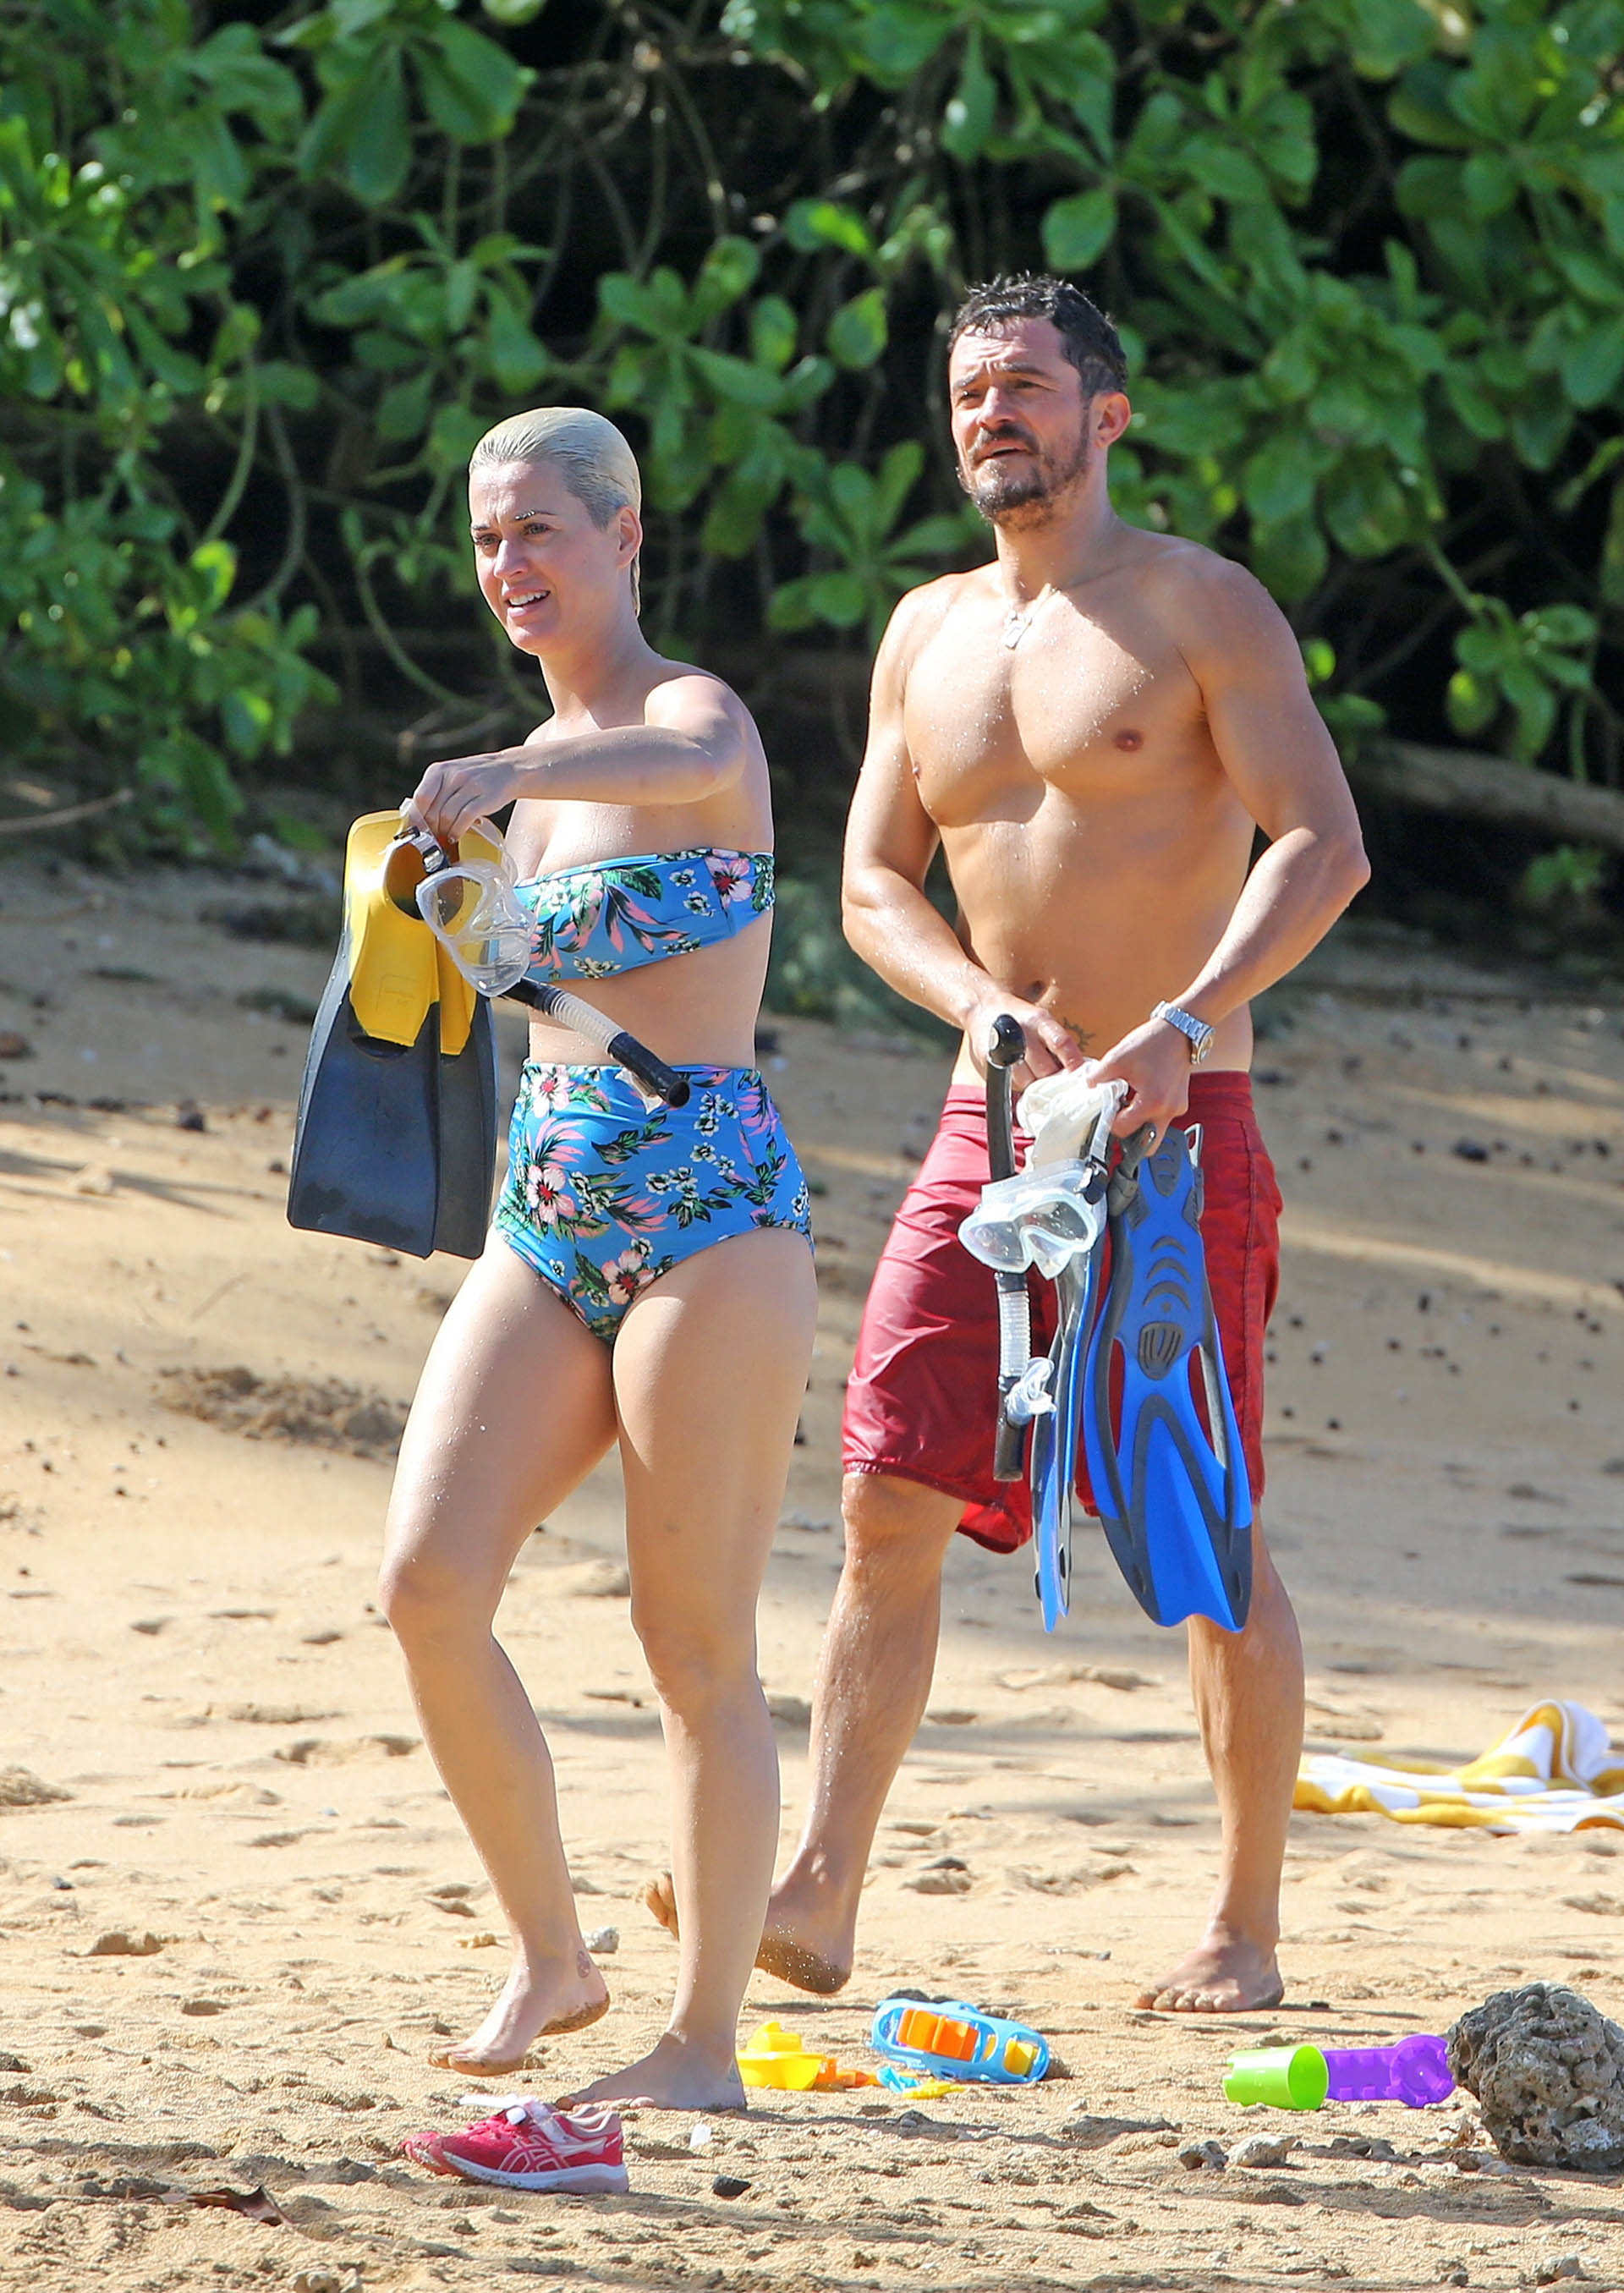 Katy y Orlando en Hawaii (Splash News/The Grosby Group)